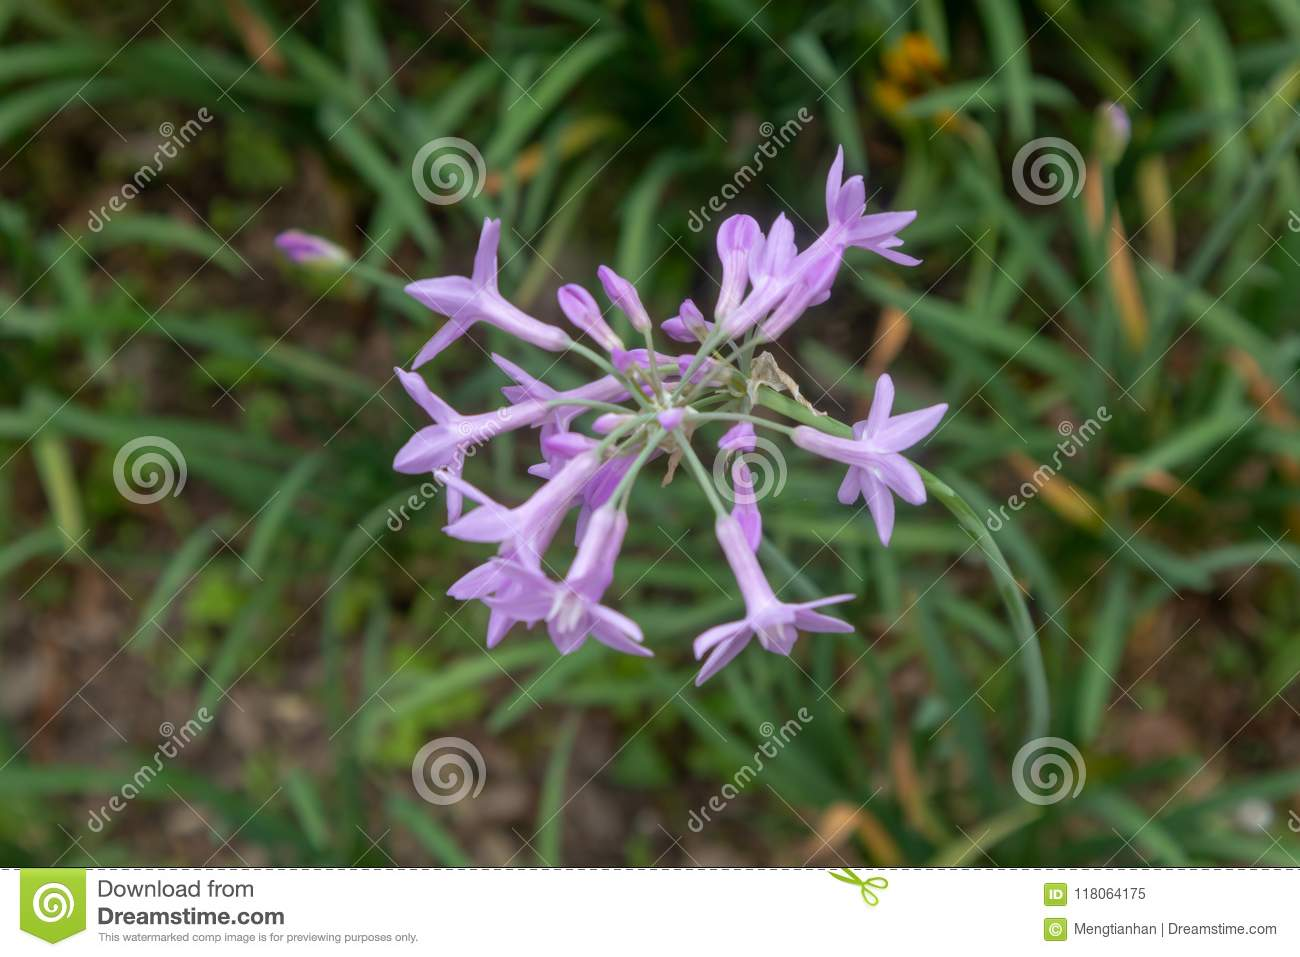 Tulbaghia Violacea Stock Image Image Of Bulbs Chinese 118064175